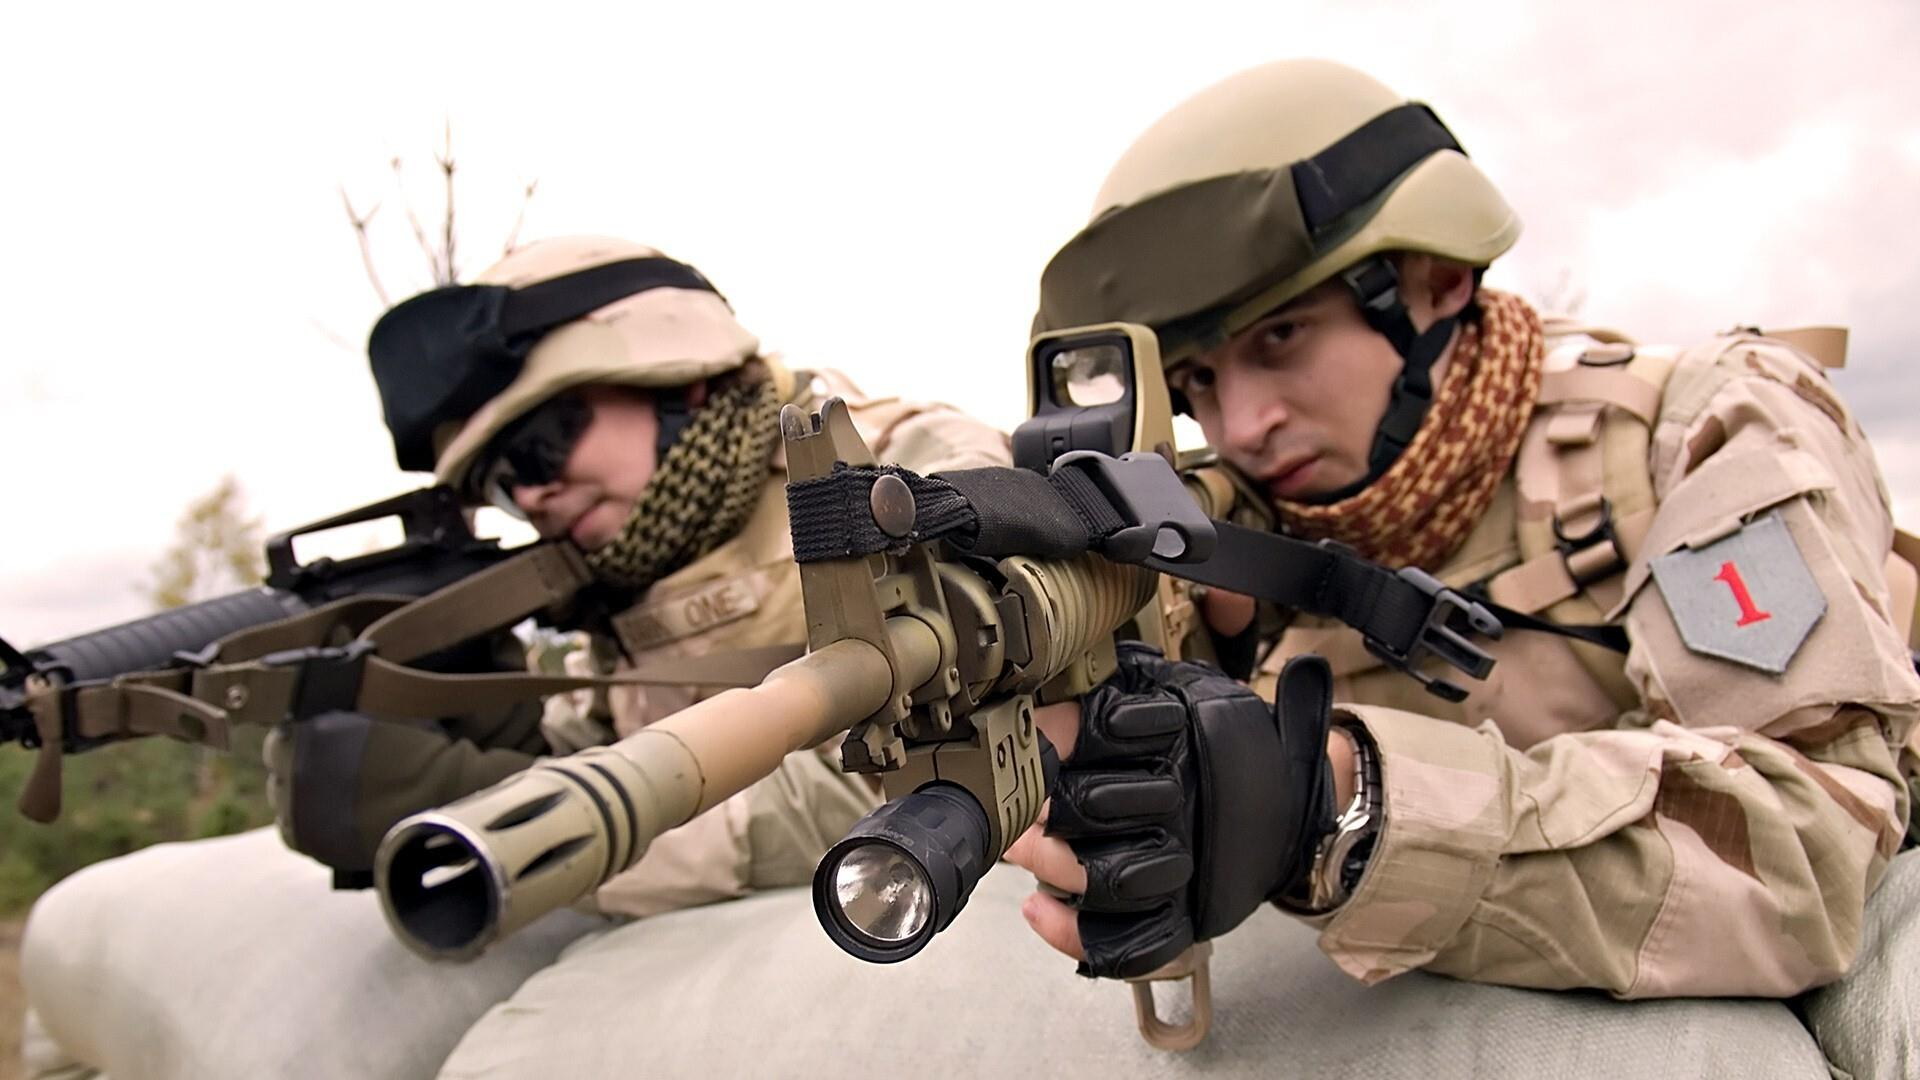 1920x1080 Army Soldiers with Sniper Rifle Photo